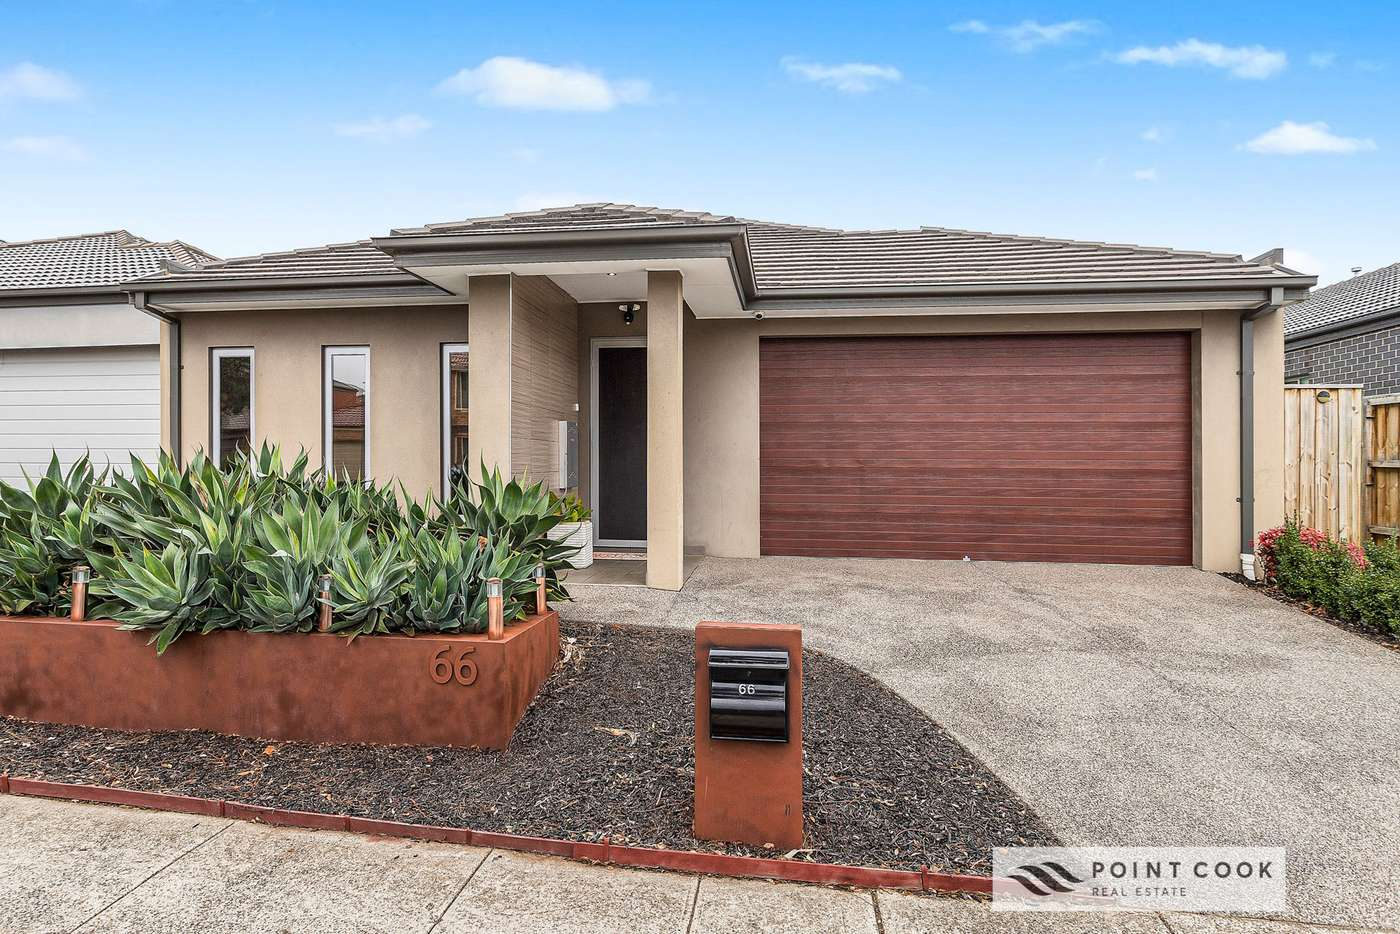 Main view of Homely house listing, 66 Cooinda Way, Point Cook VIC 3030